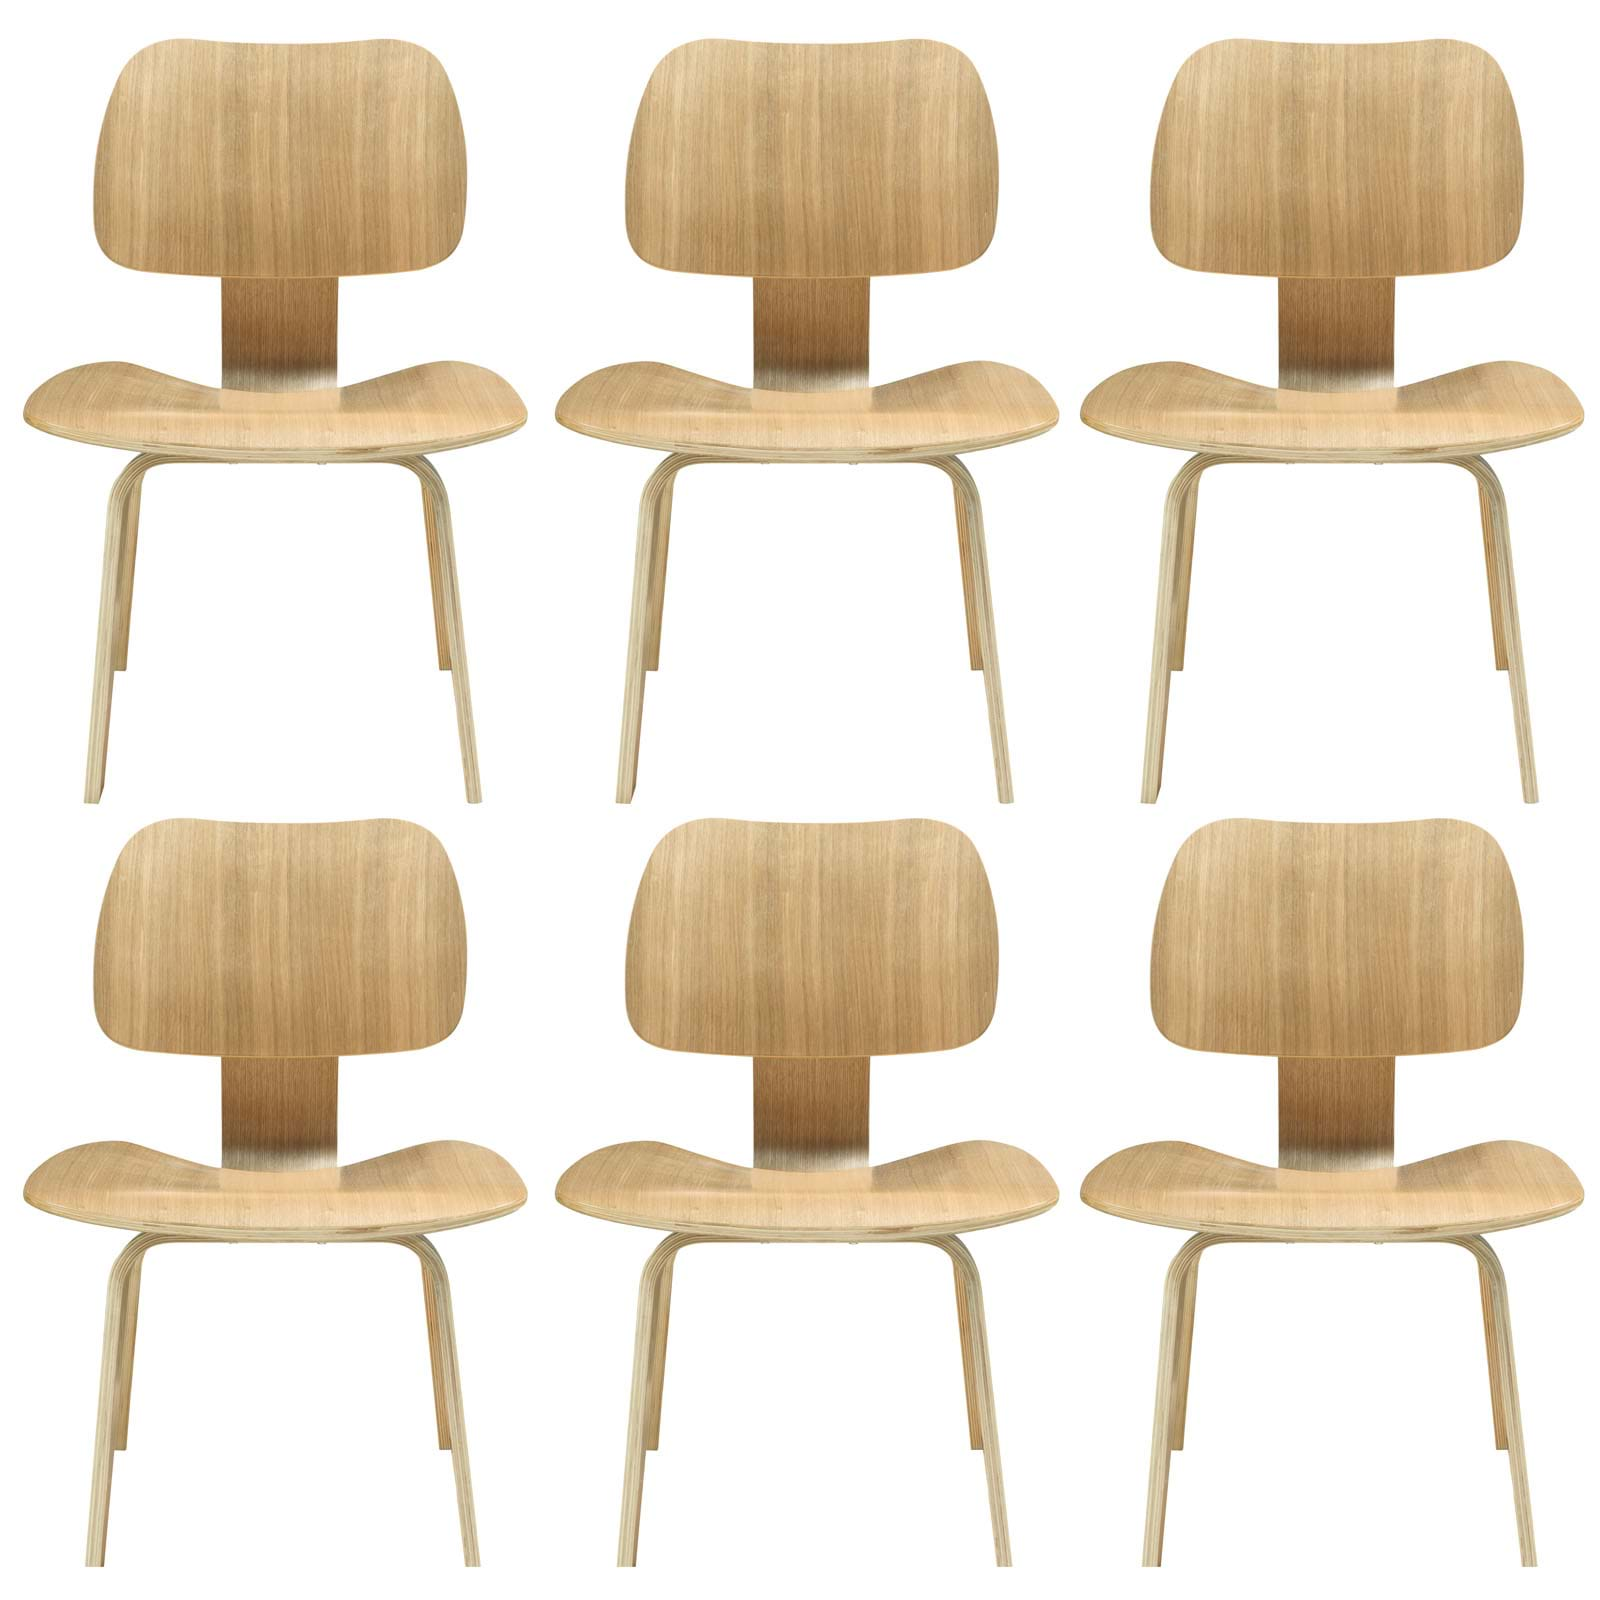 Fathom Dining Chairs Set of 6